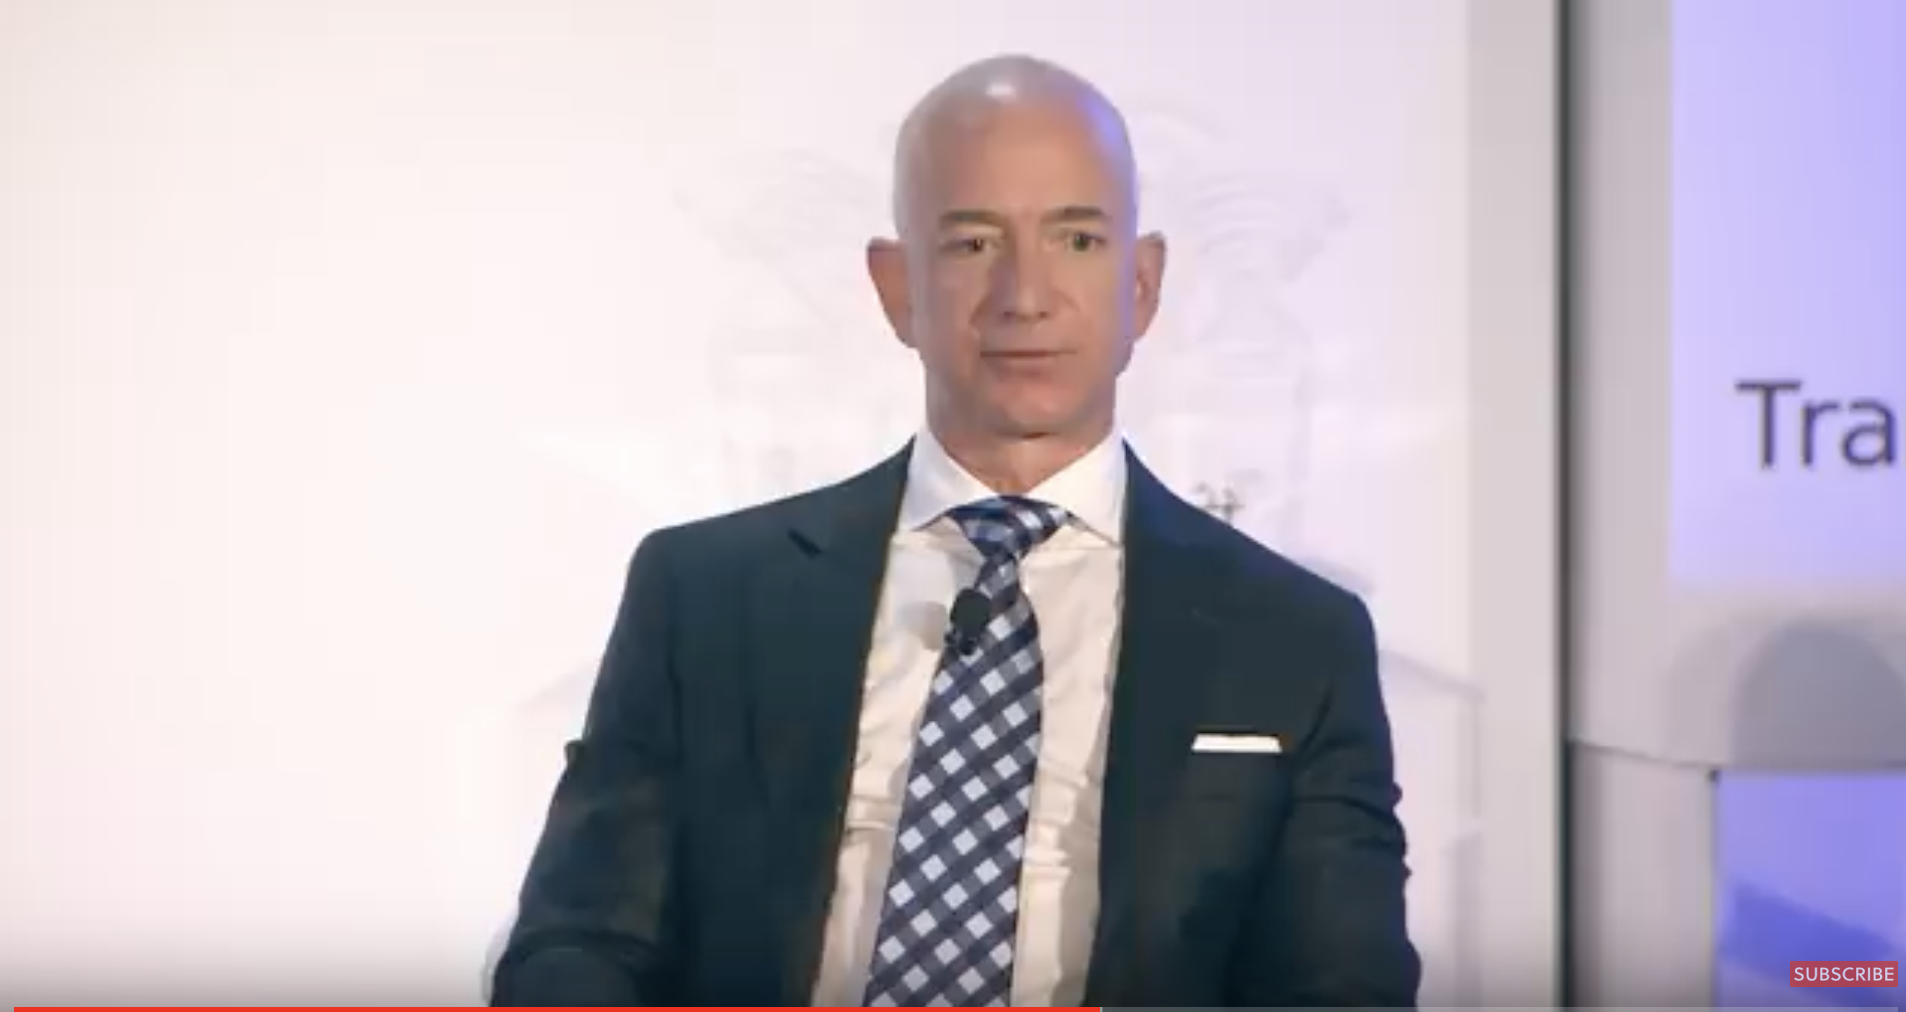 Jeff Bezos interview. 37 minutes long ...